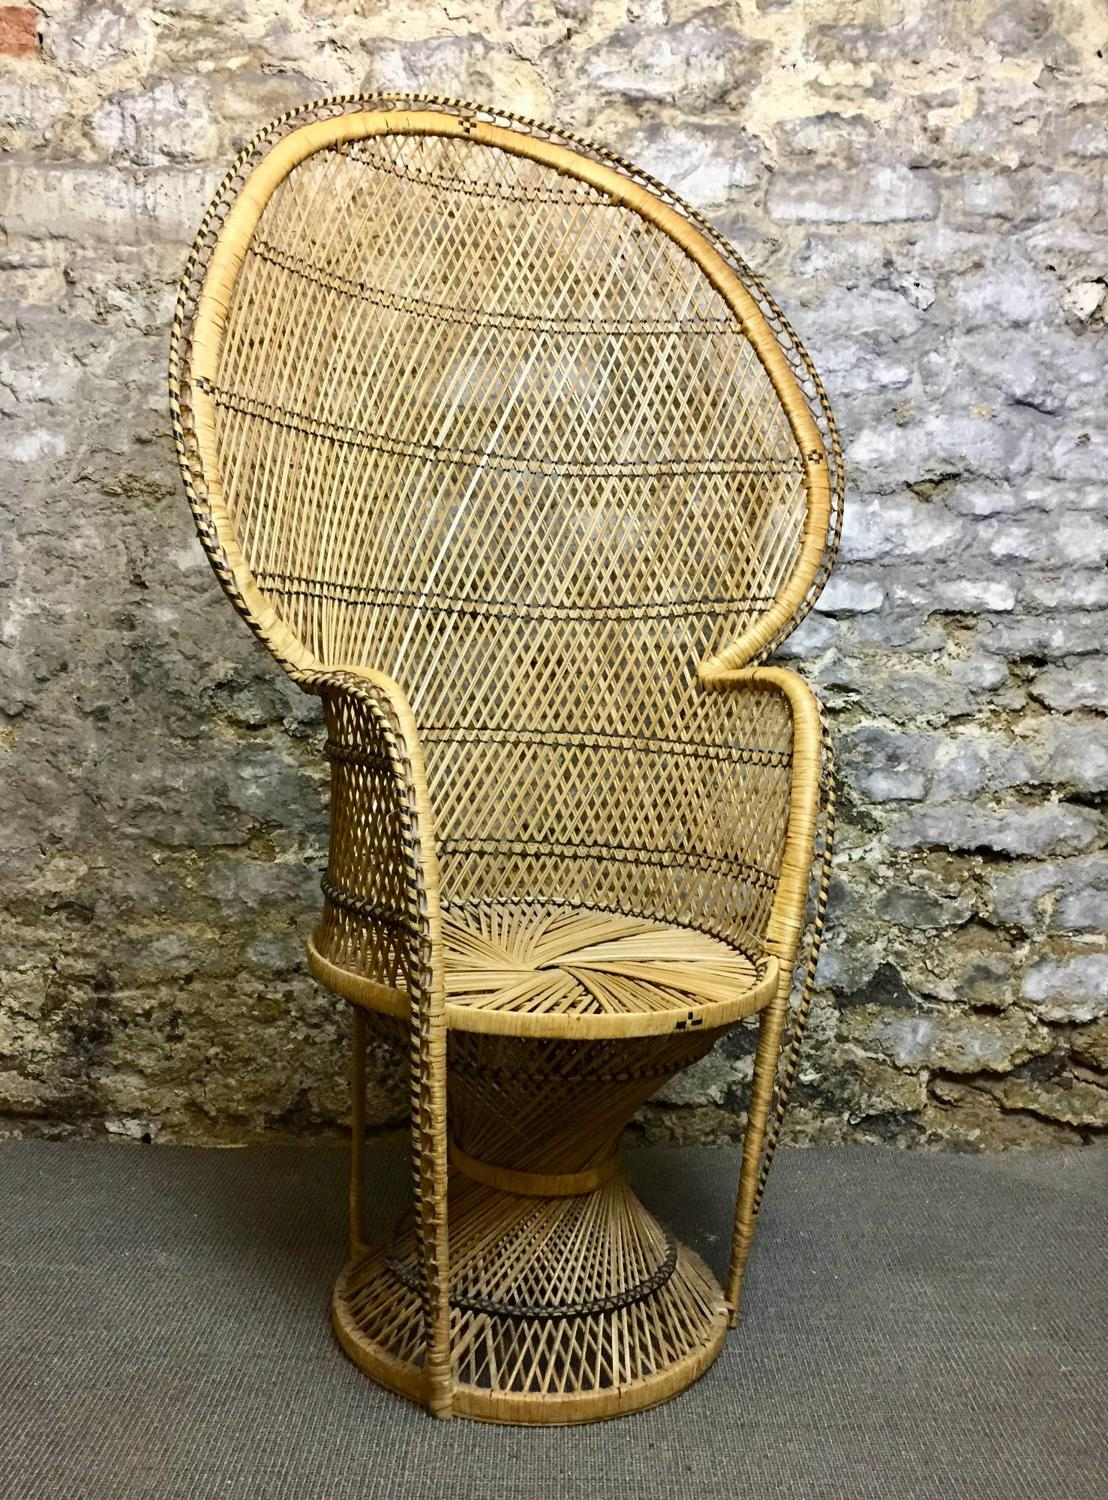 Vintage 1970's Rattan Peacock Chair